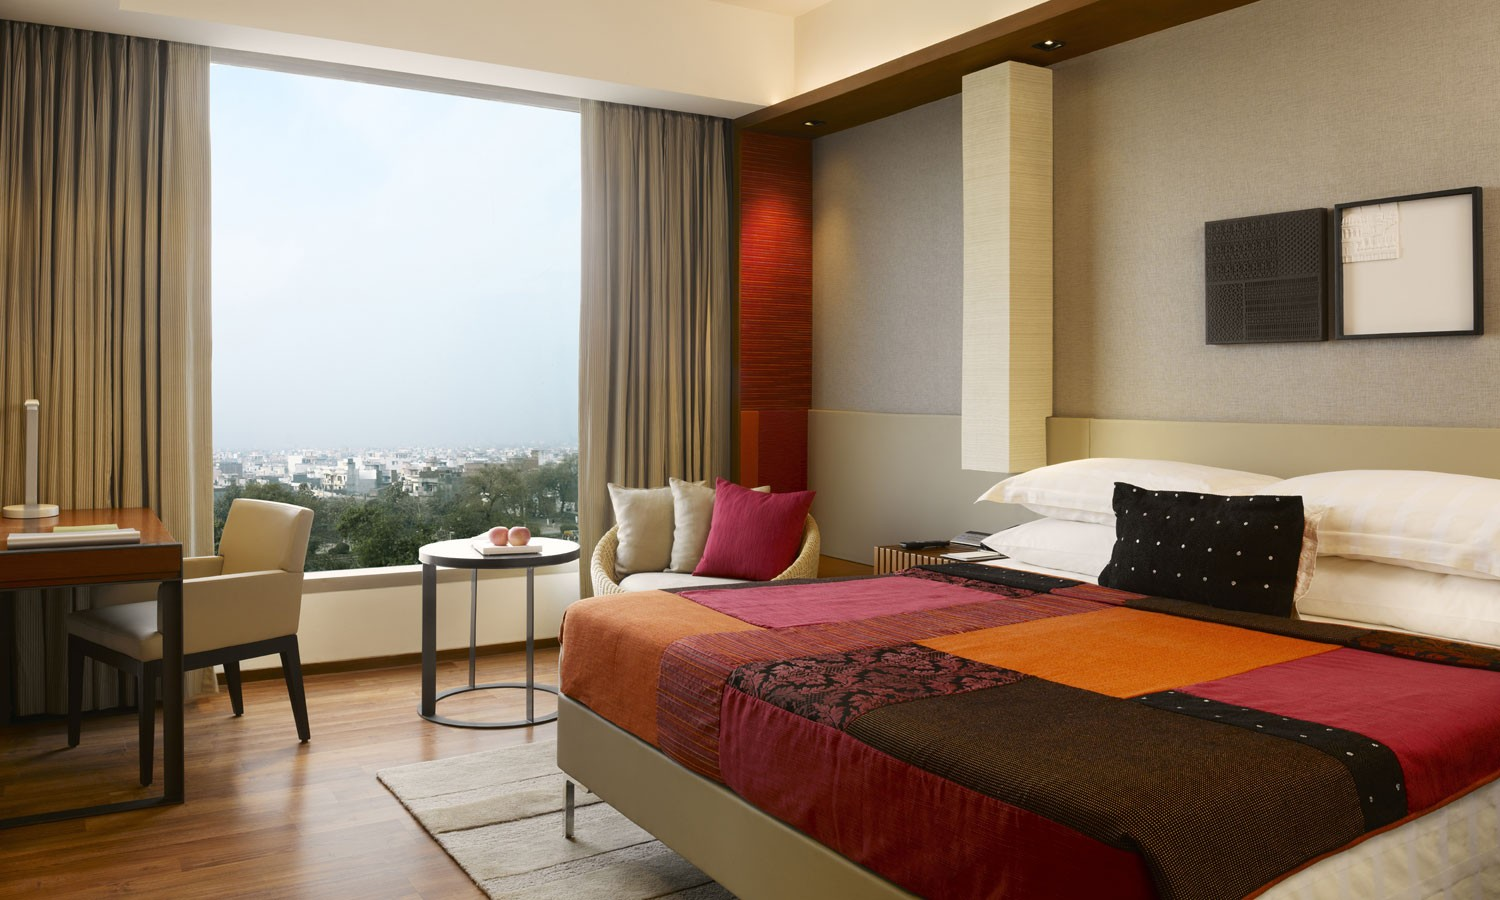 Double Bedroom Hyatt Regency Amritsar